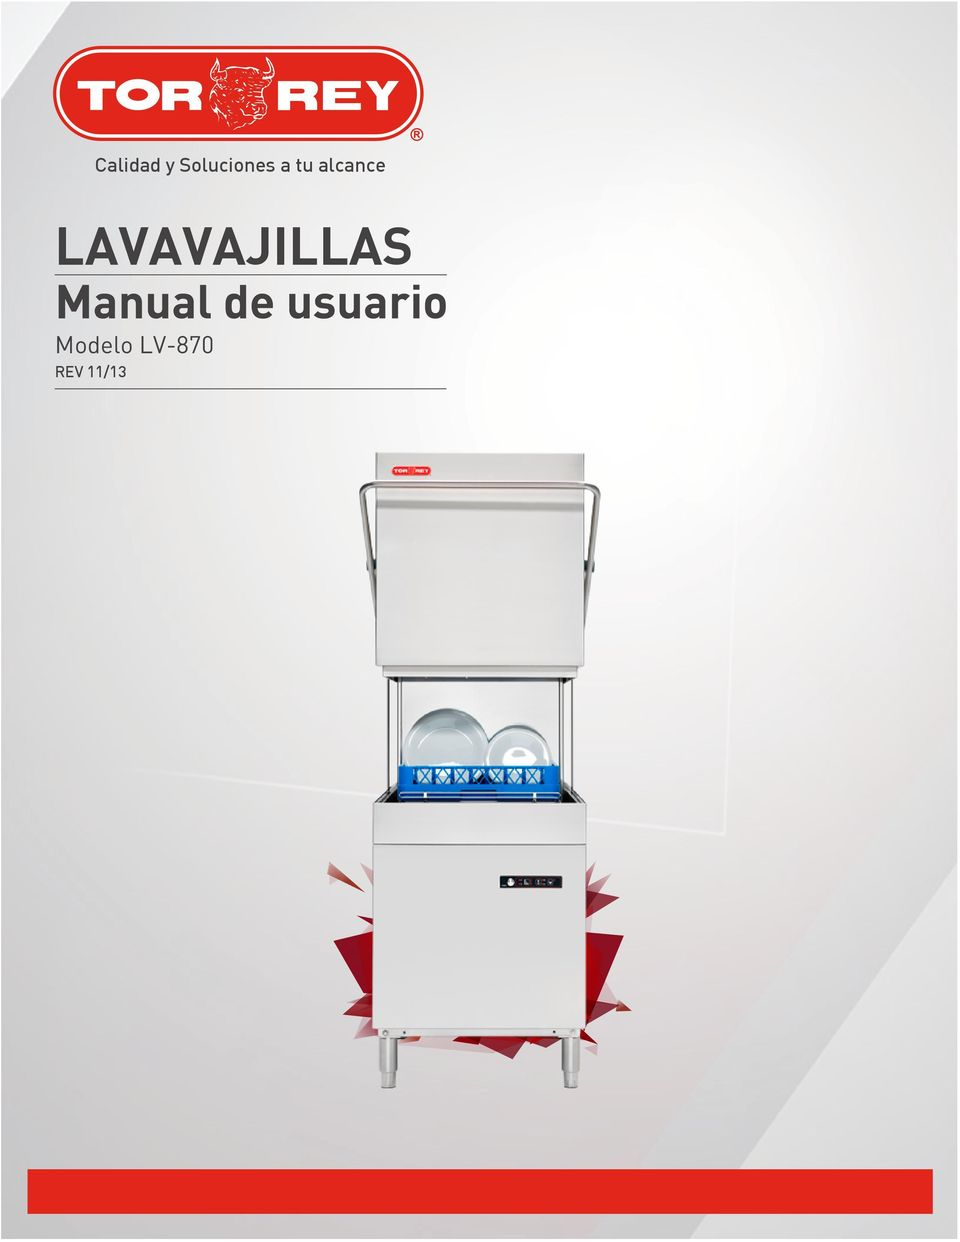 LAVAVAJILLAS Manual